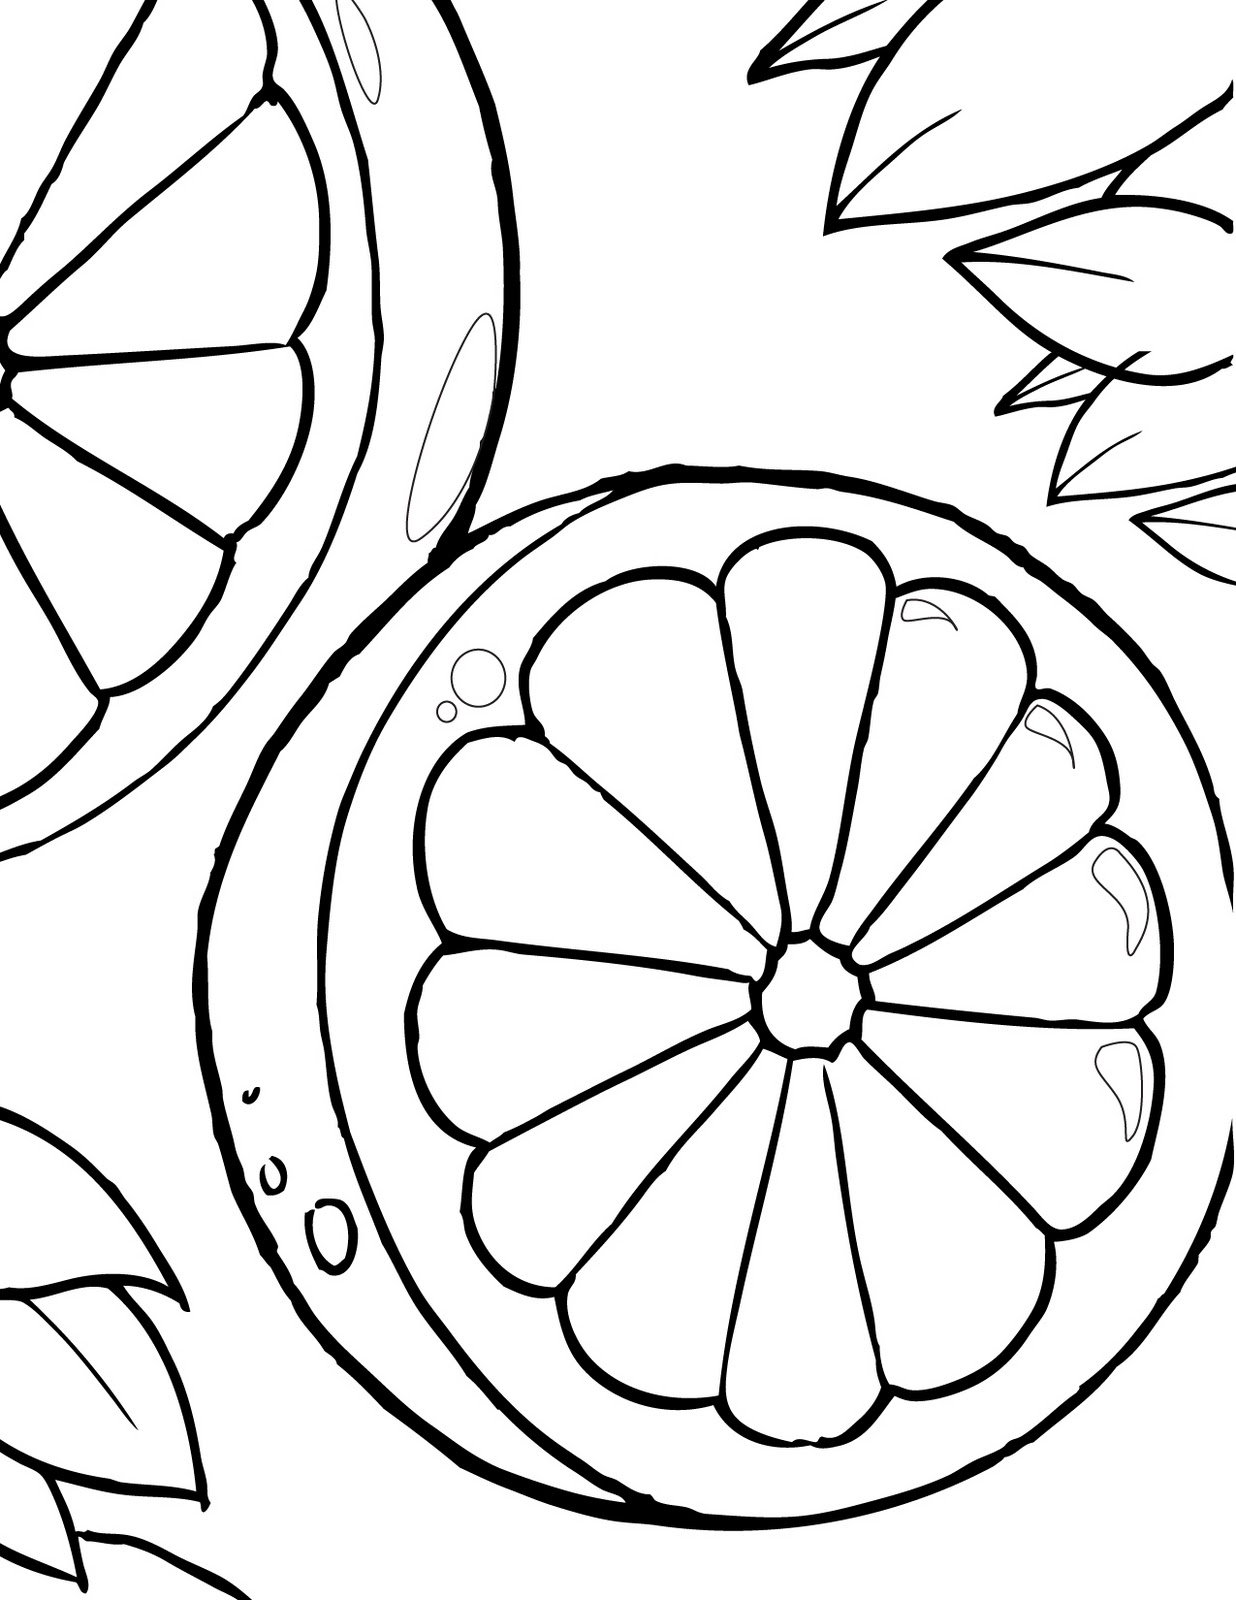 orange colouring picture orange coloring pages sketch coloring page colouring orange picture